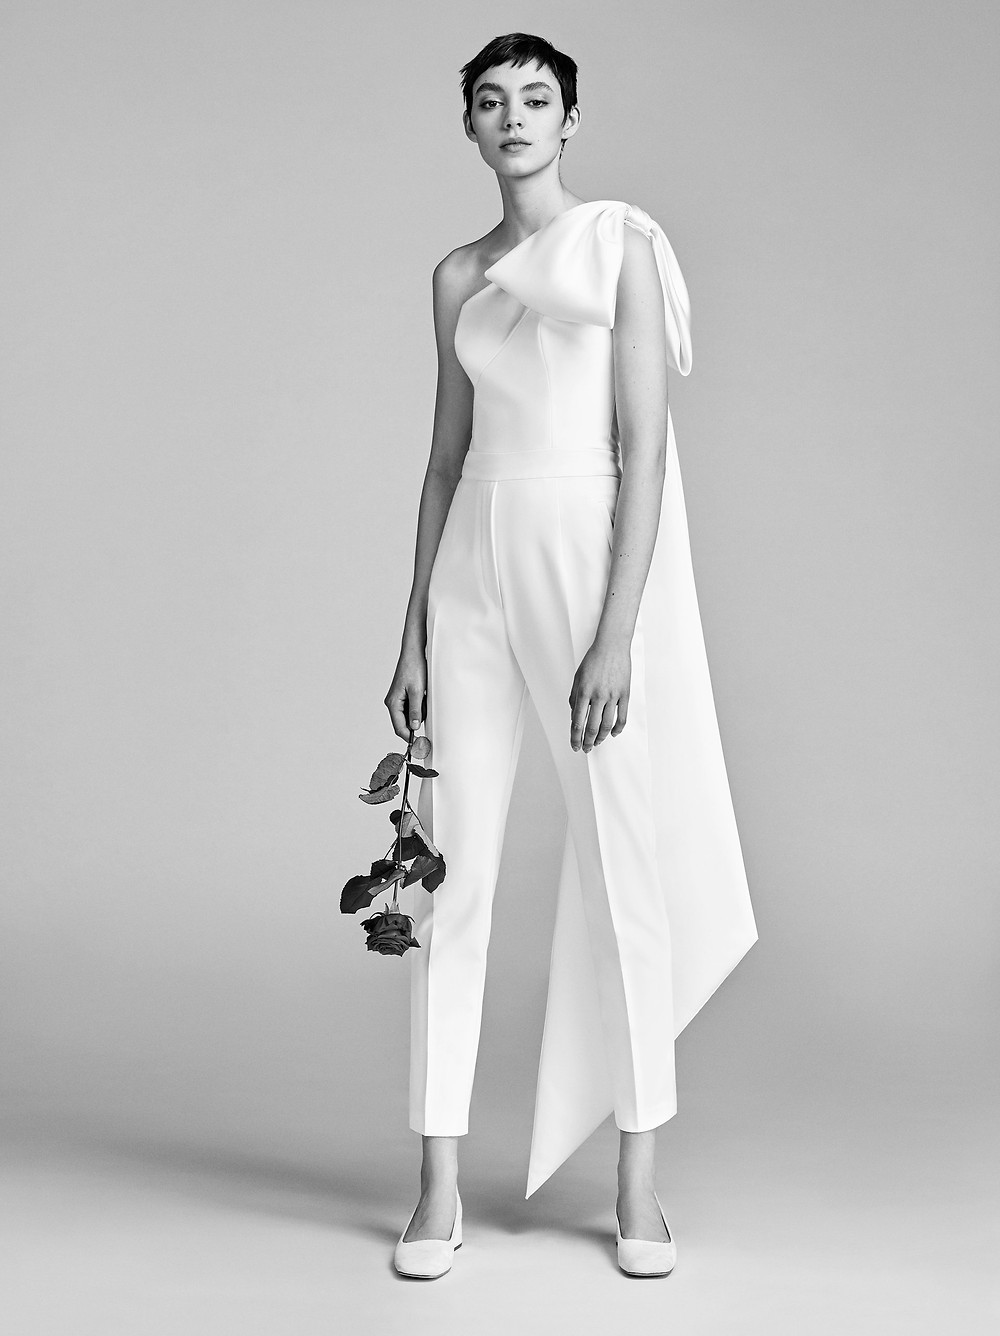 A Viktor & Rolf one shoulder simple linen wedding jumpsuit or pantsuit with a bow